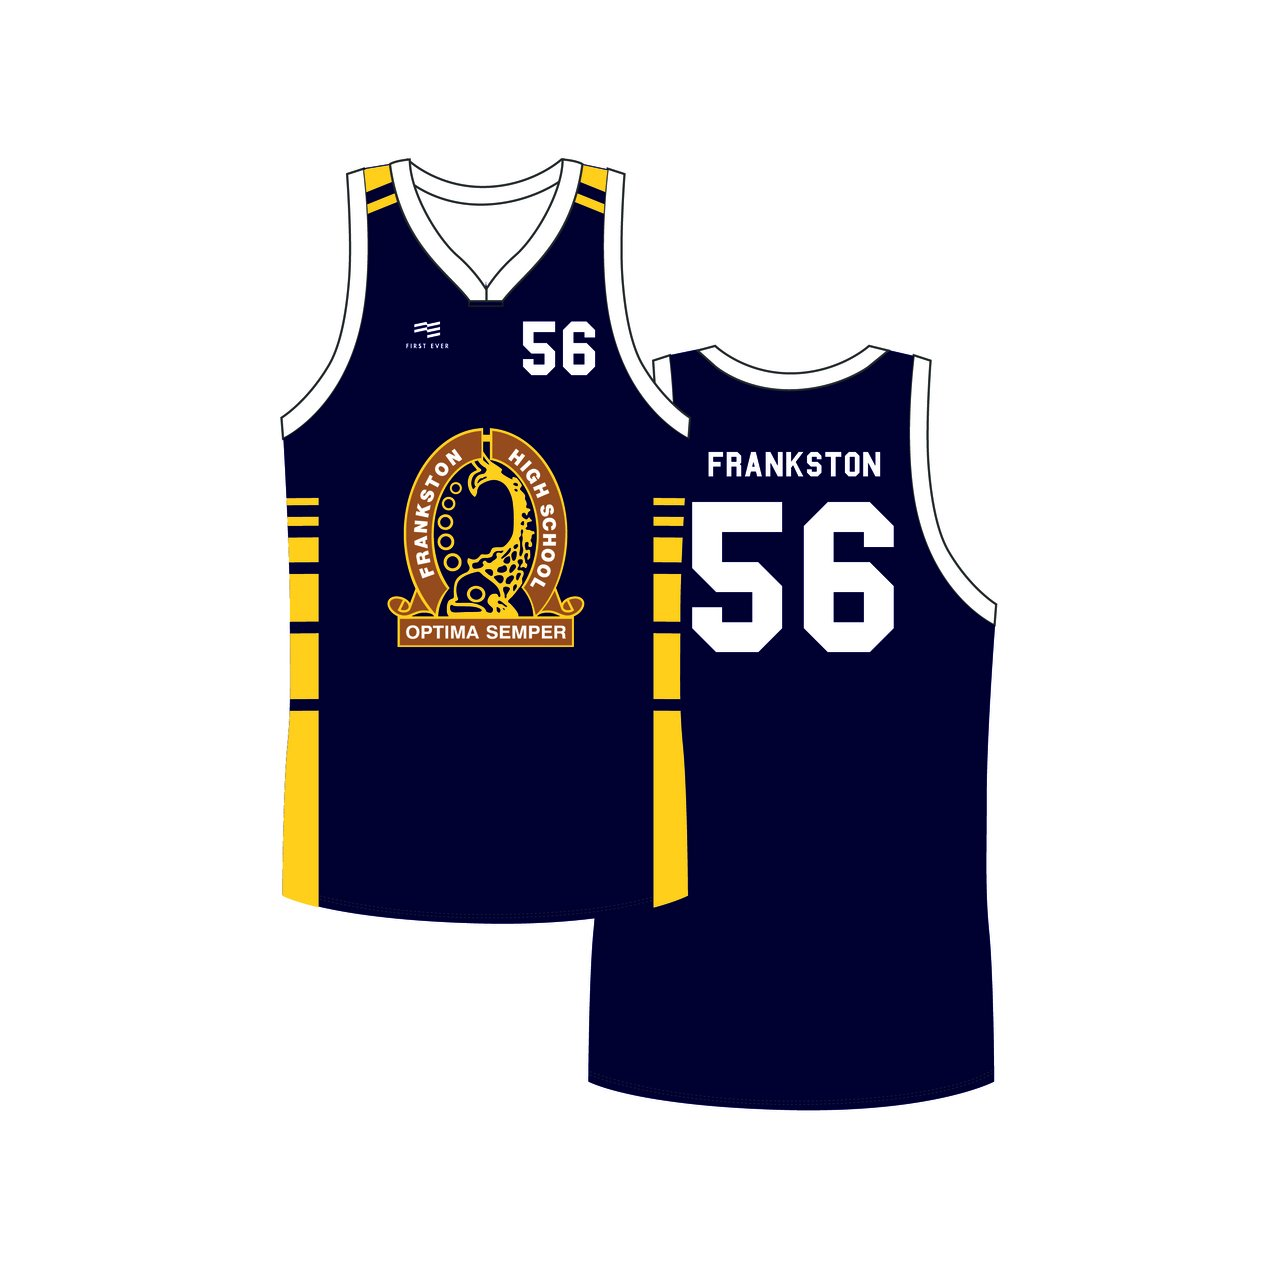 Frankston High Reversible Playing Jersey